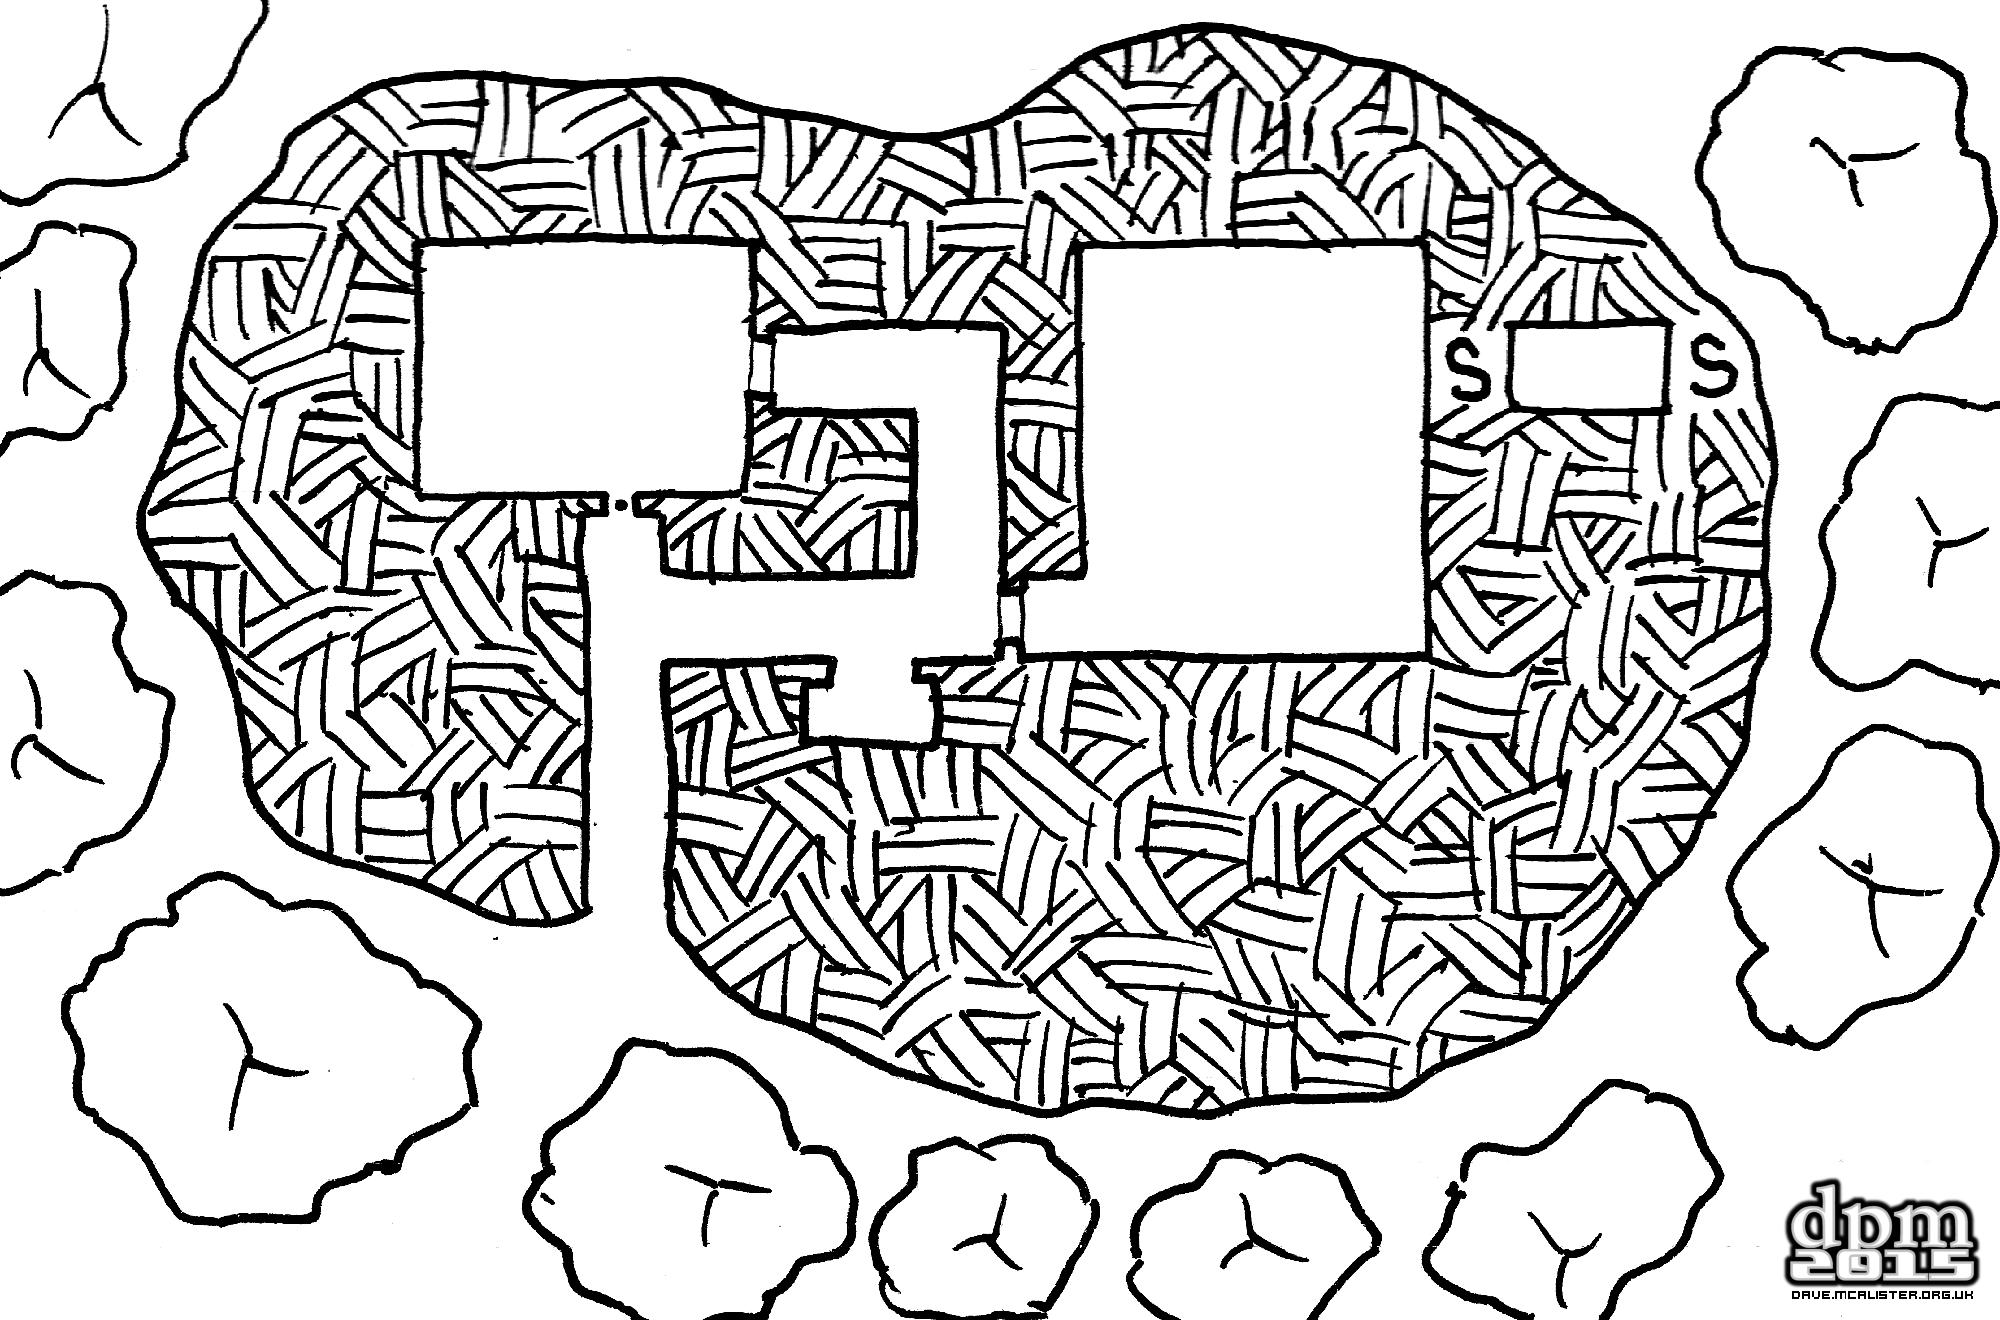 [Friday Map] Burial Barrow